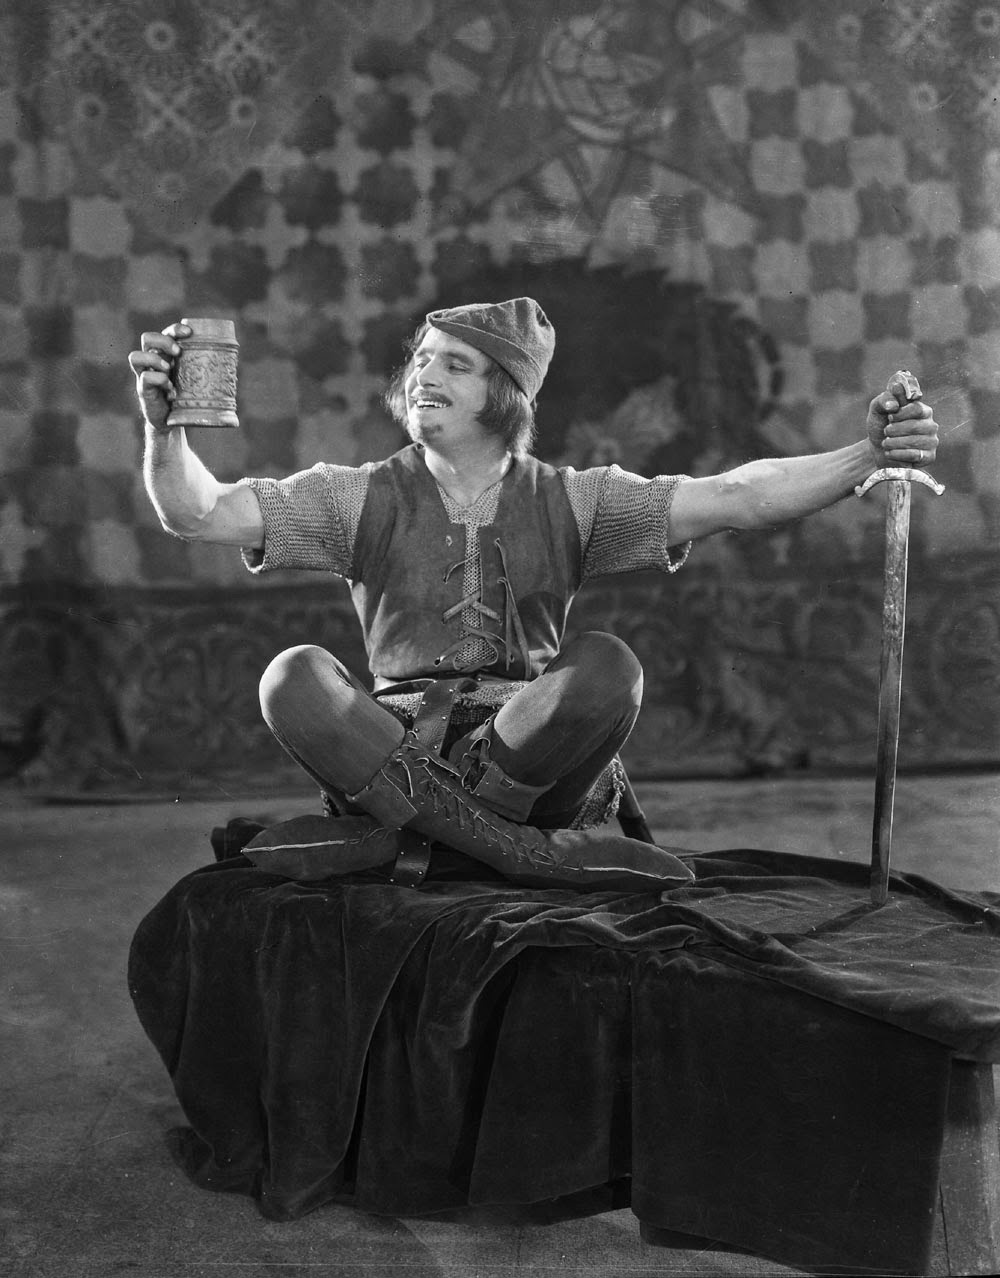 Douglas Fairbanks in Robin Hood (1922) – many of his films suffered at Rohauer's hands. Rohauer, unlike Fairbanks' titular hero, robbed from the poor to feed his ego.